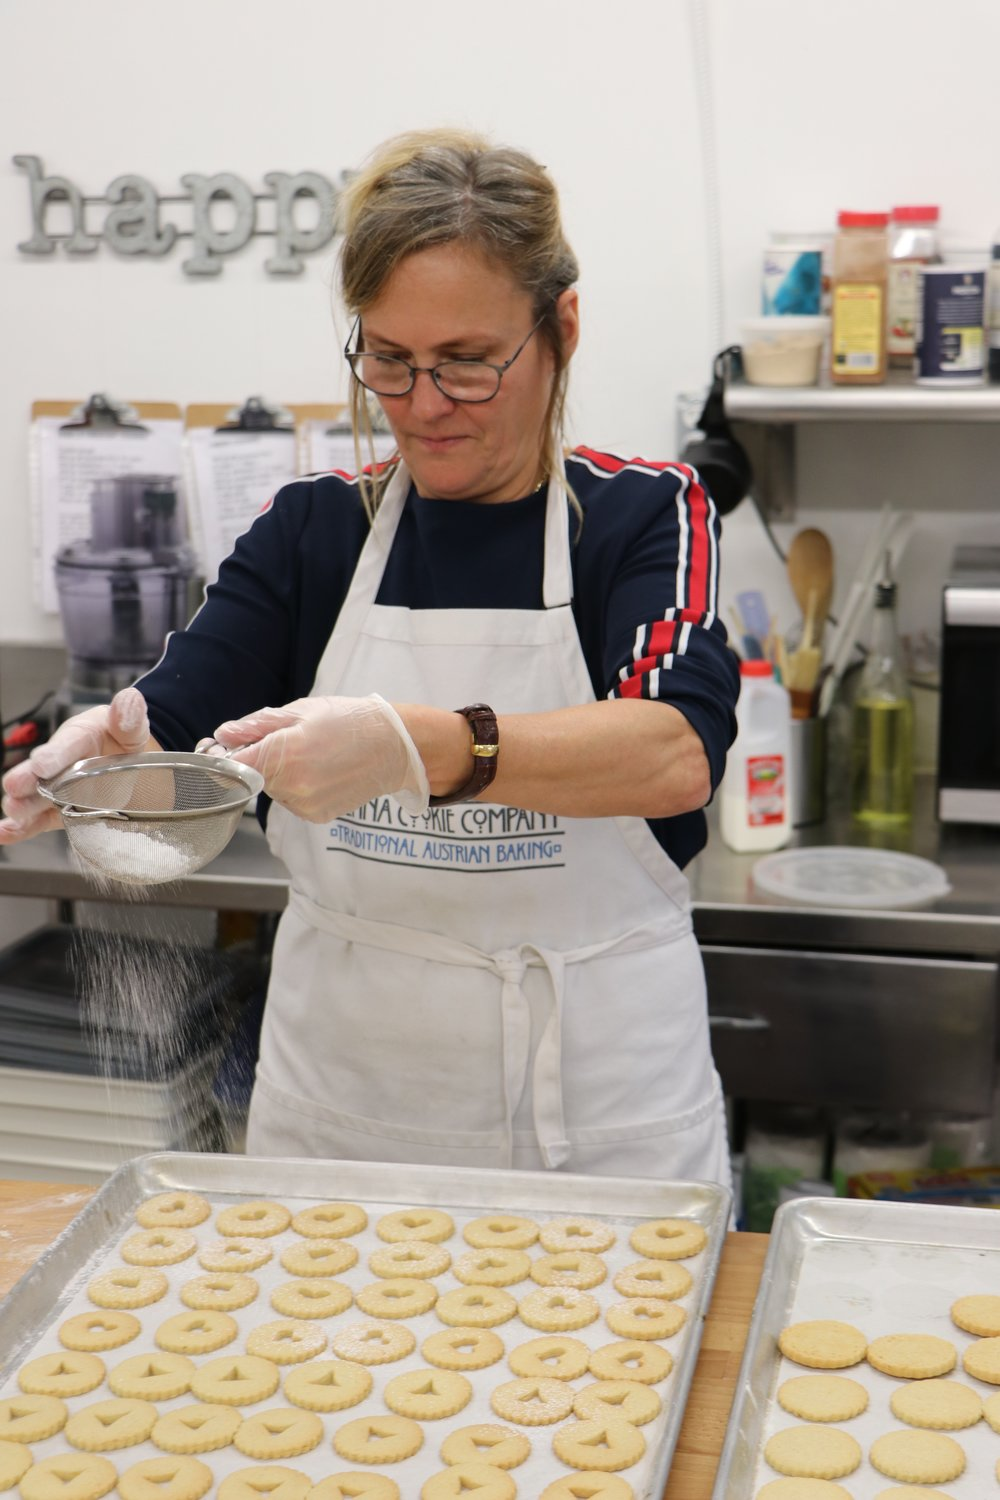 Heidi Riegler dusts a tray of Linzer cookies with powdered sugar before filling them with jam.